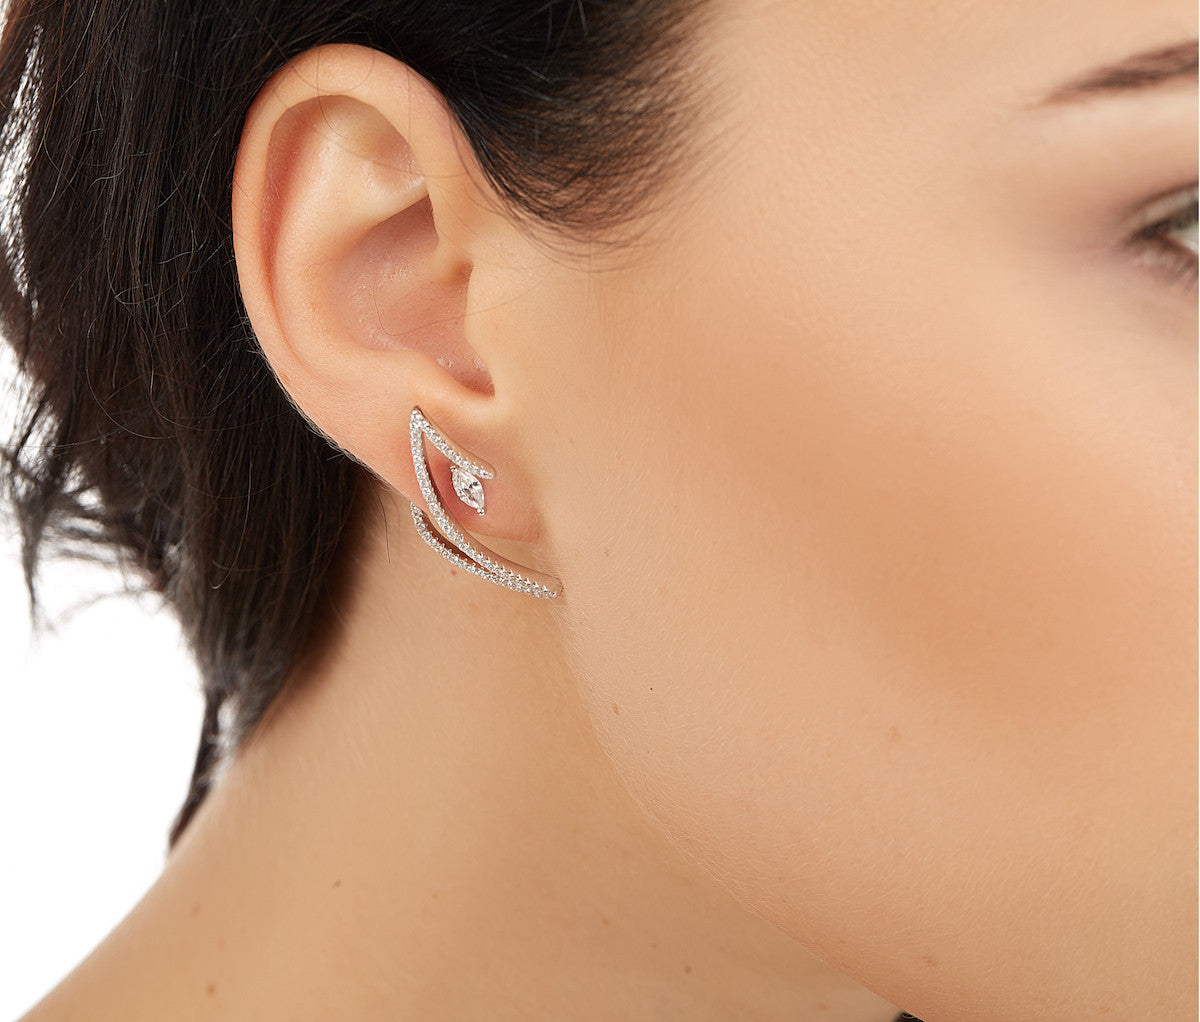 Silver Z-Shaped Stud Earrings